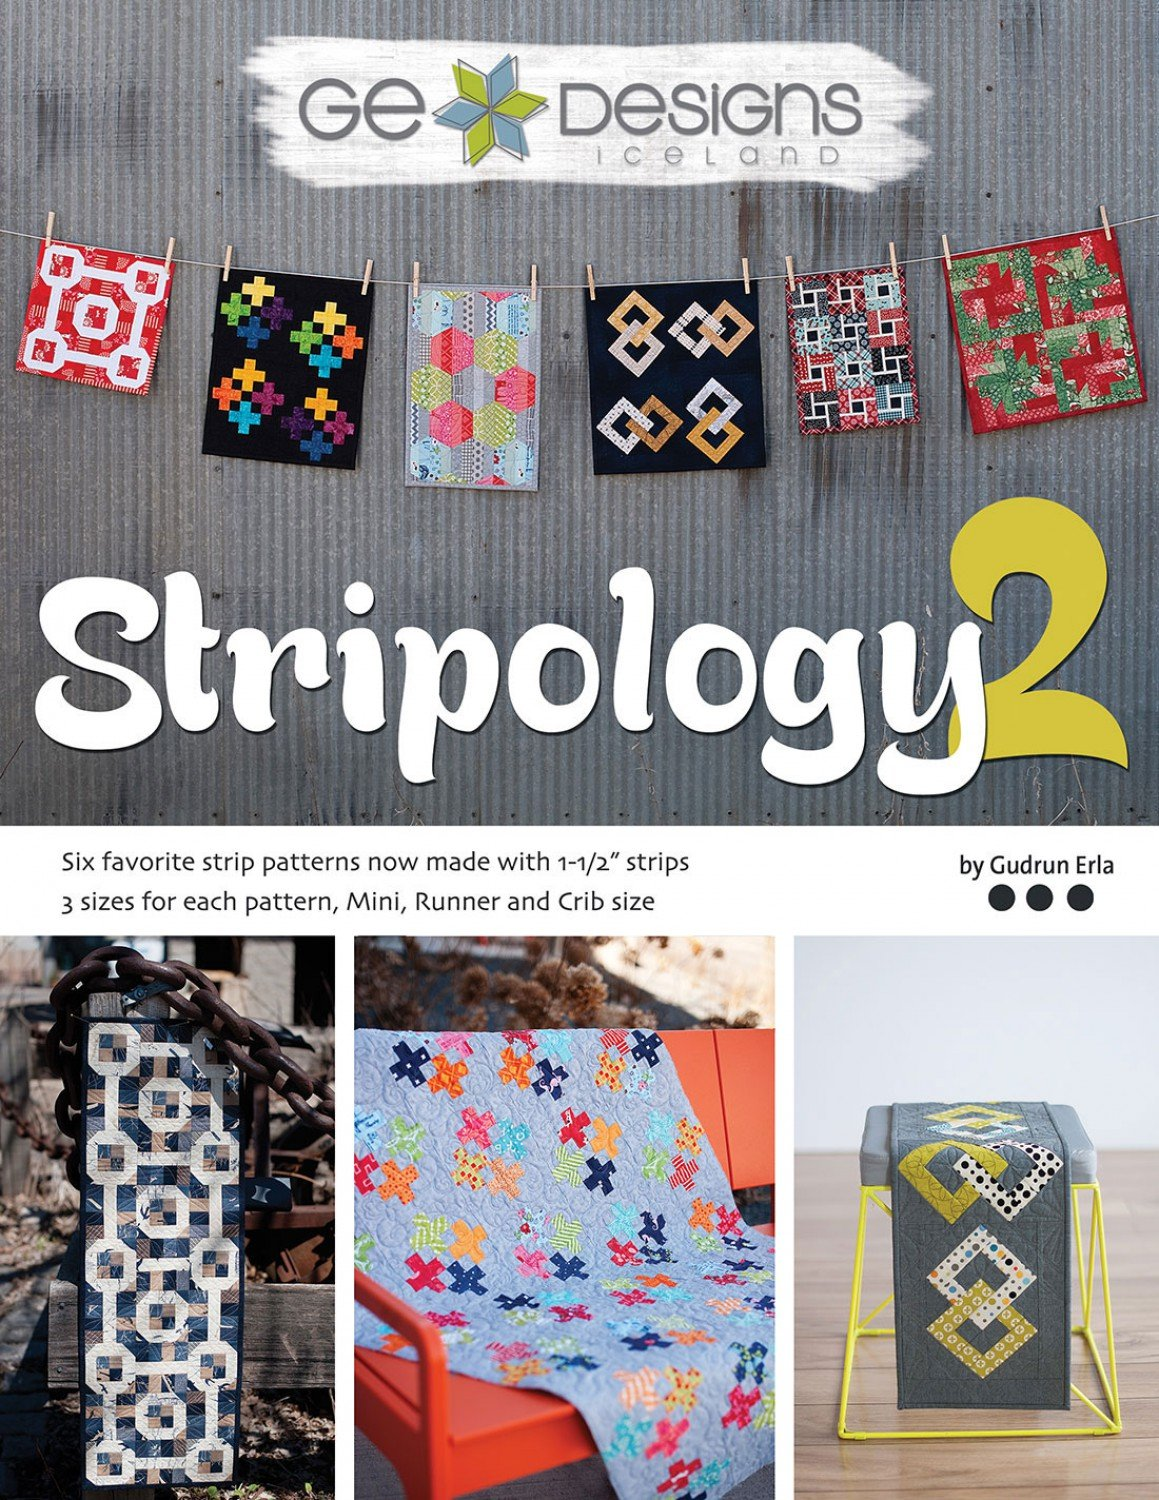 Stripology 2-GE Designs- Gudrun Erla